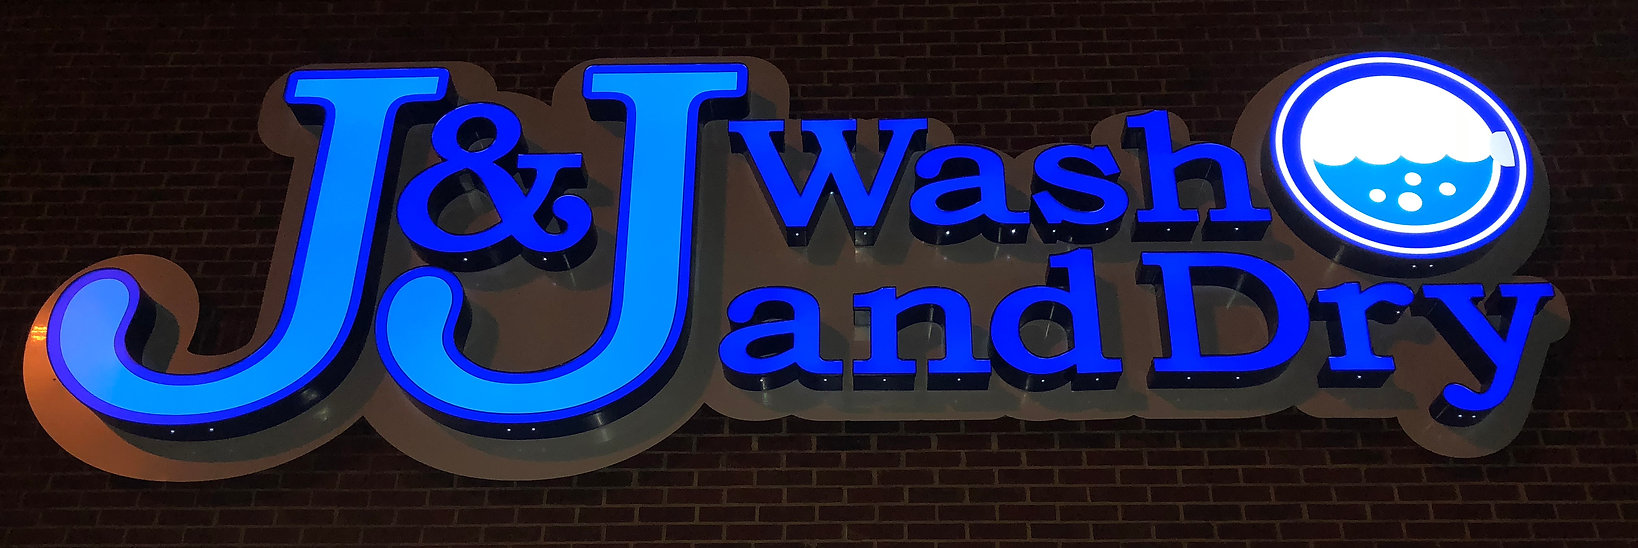 Best Dallas coin laundry laundromat and laundry service bulk wash Lavanderia